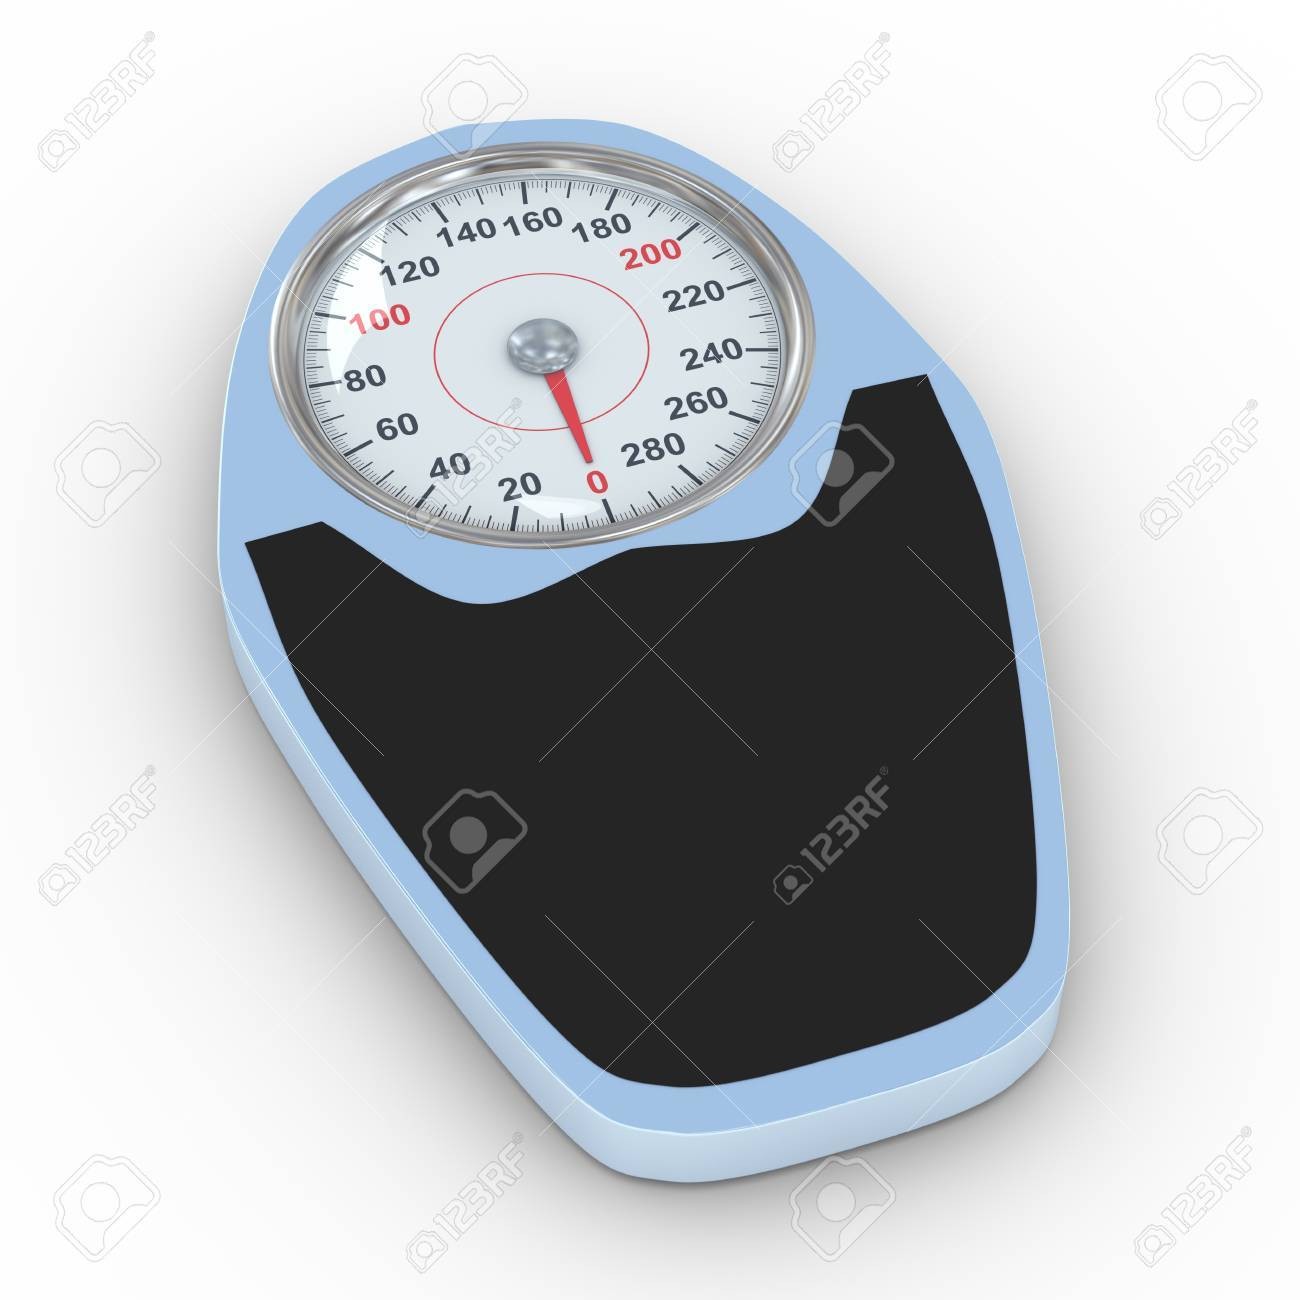 3d illustration of bathroom weight scale on white background  Concept of dieting, exercise and weight loss Stock Illustration - 20946856